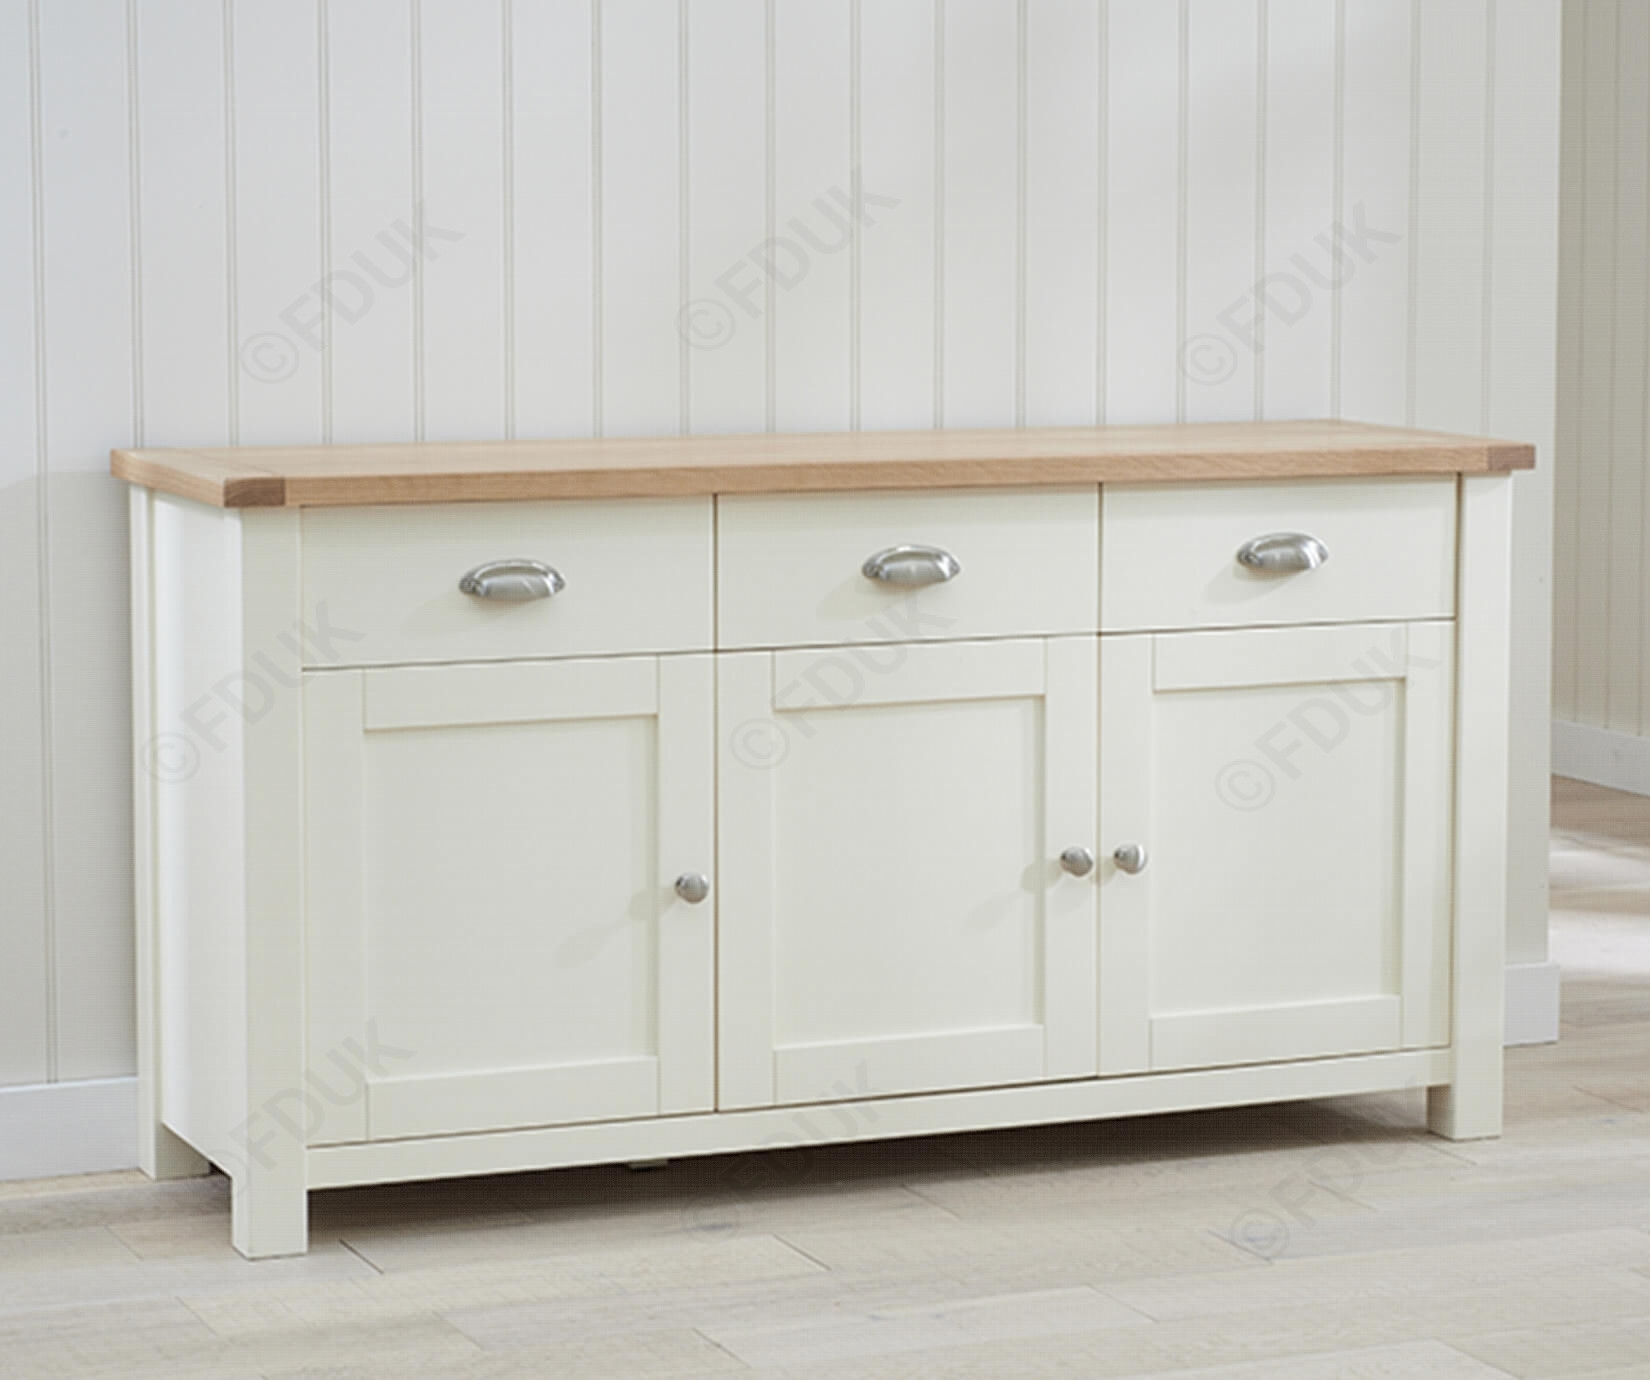 Mark Harris Sandringham | Sandringham Oak And Cream 3 Door 3 Drawer Pertaining To Most Current 4 Door/4 Drawer Metal Inserts Sideboards (#12 of 20)